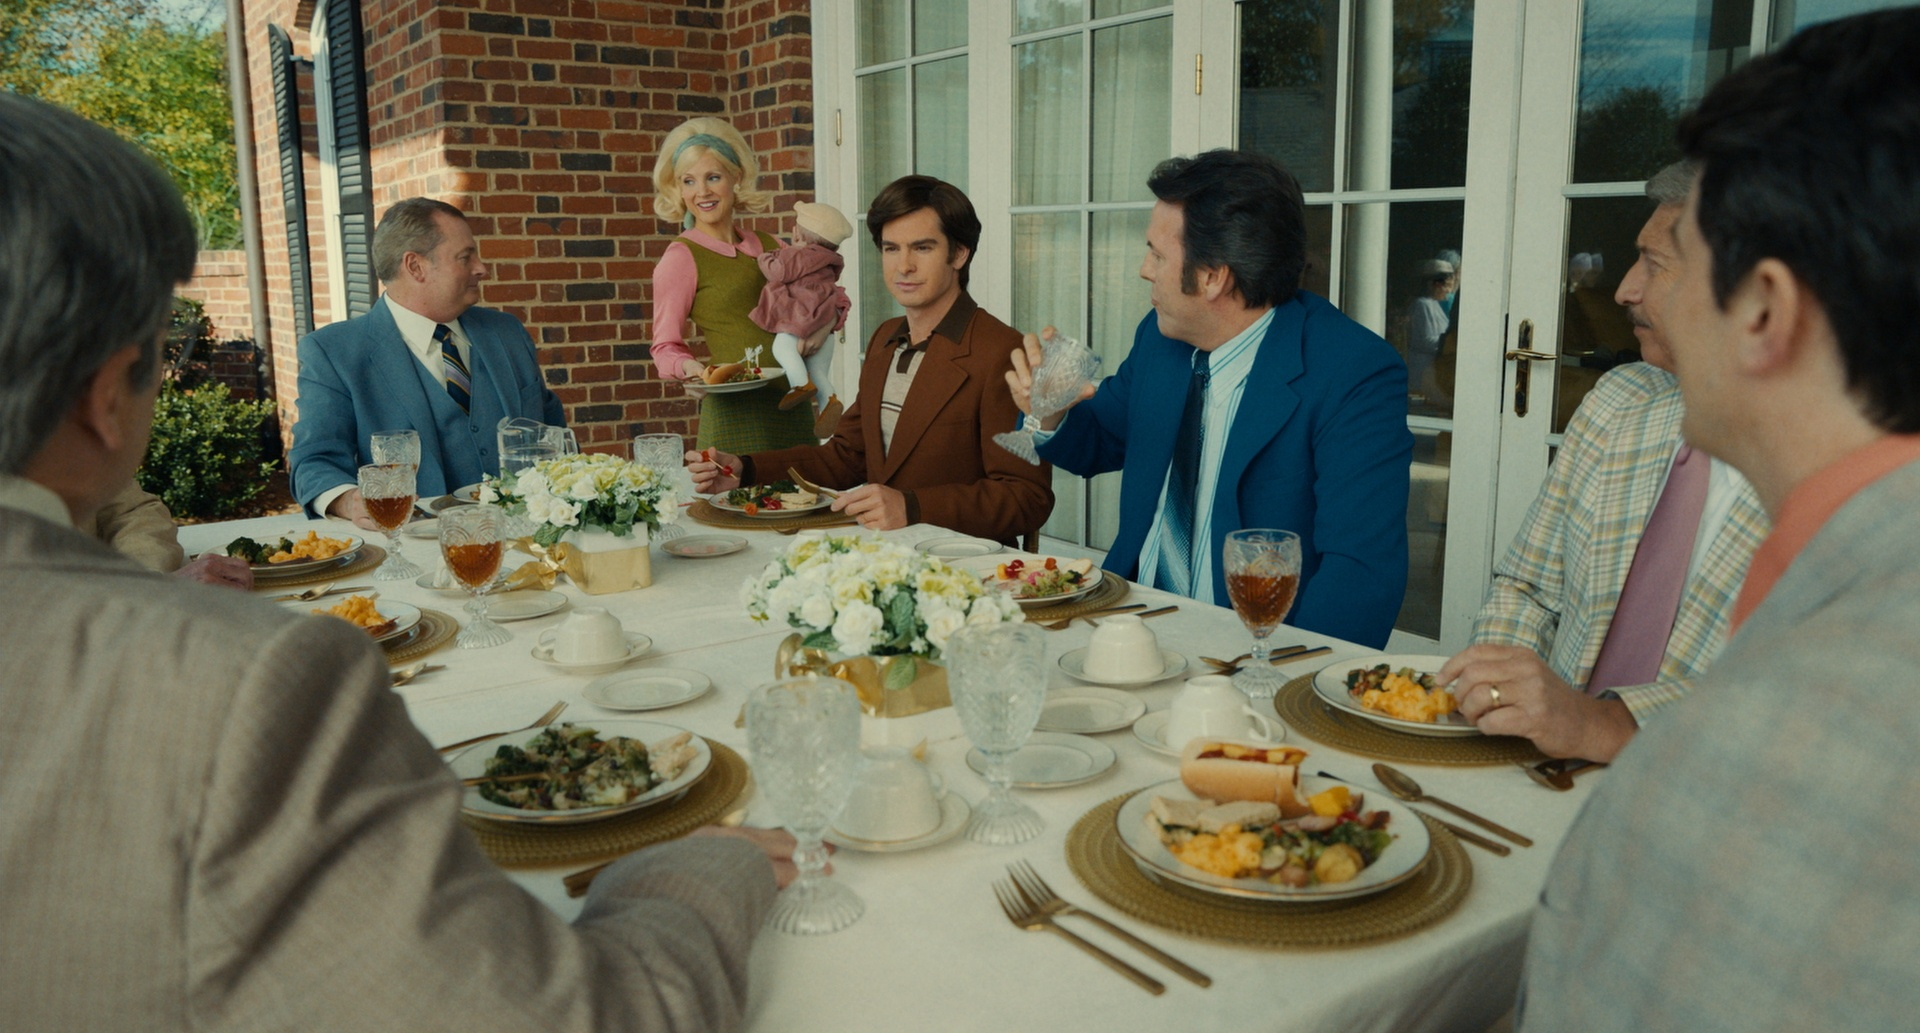 The Eyes of Tammy Faye recensione film con Jessica Chastain e Andrew Garfield